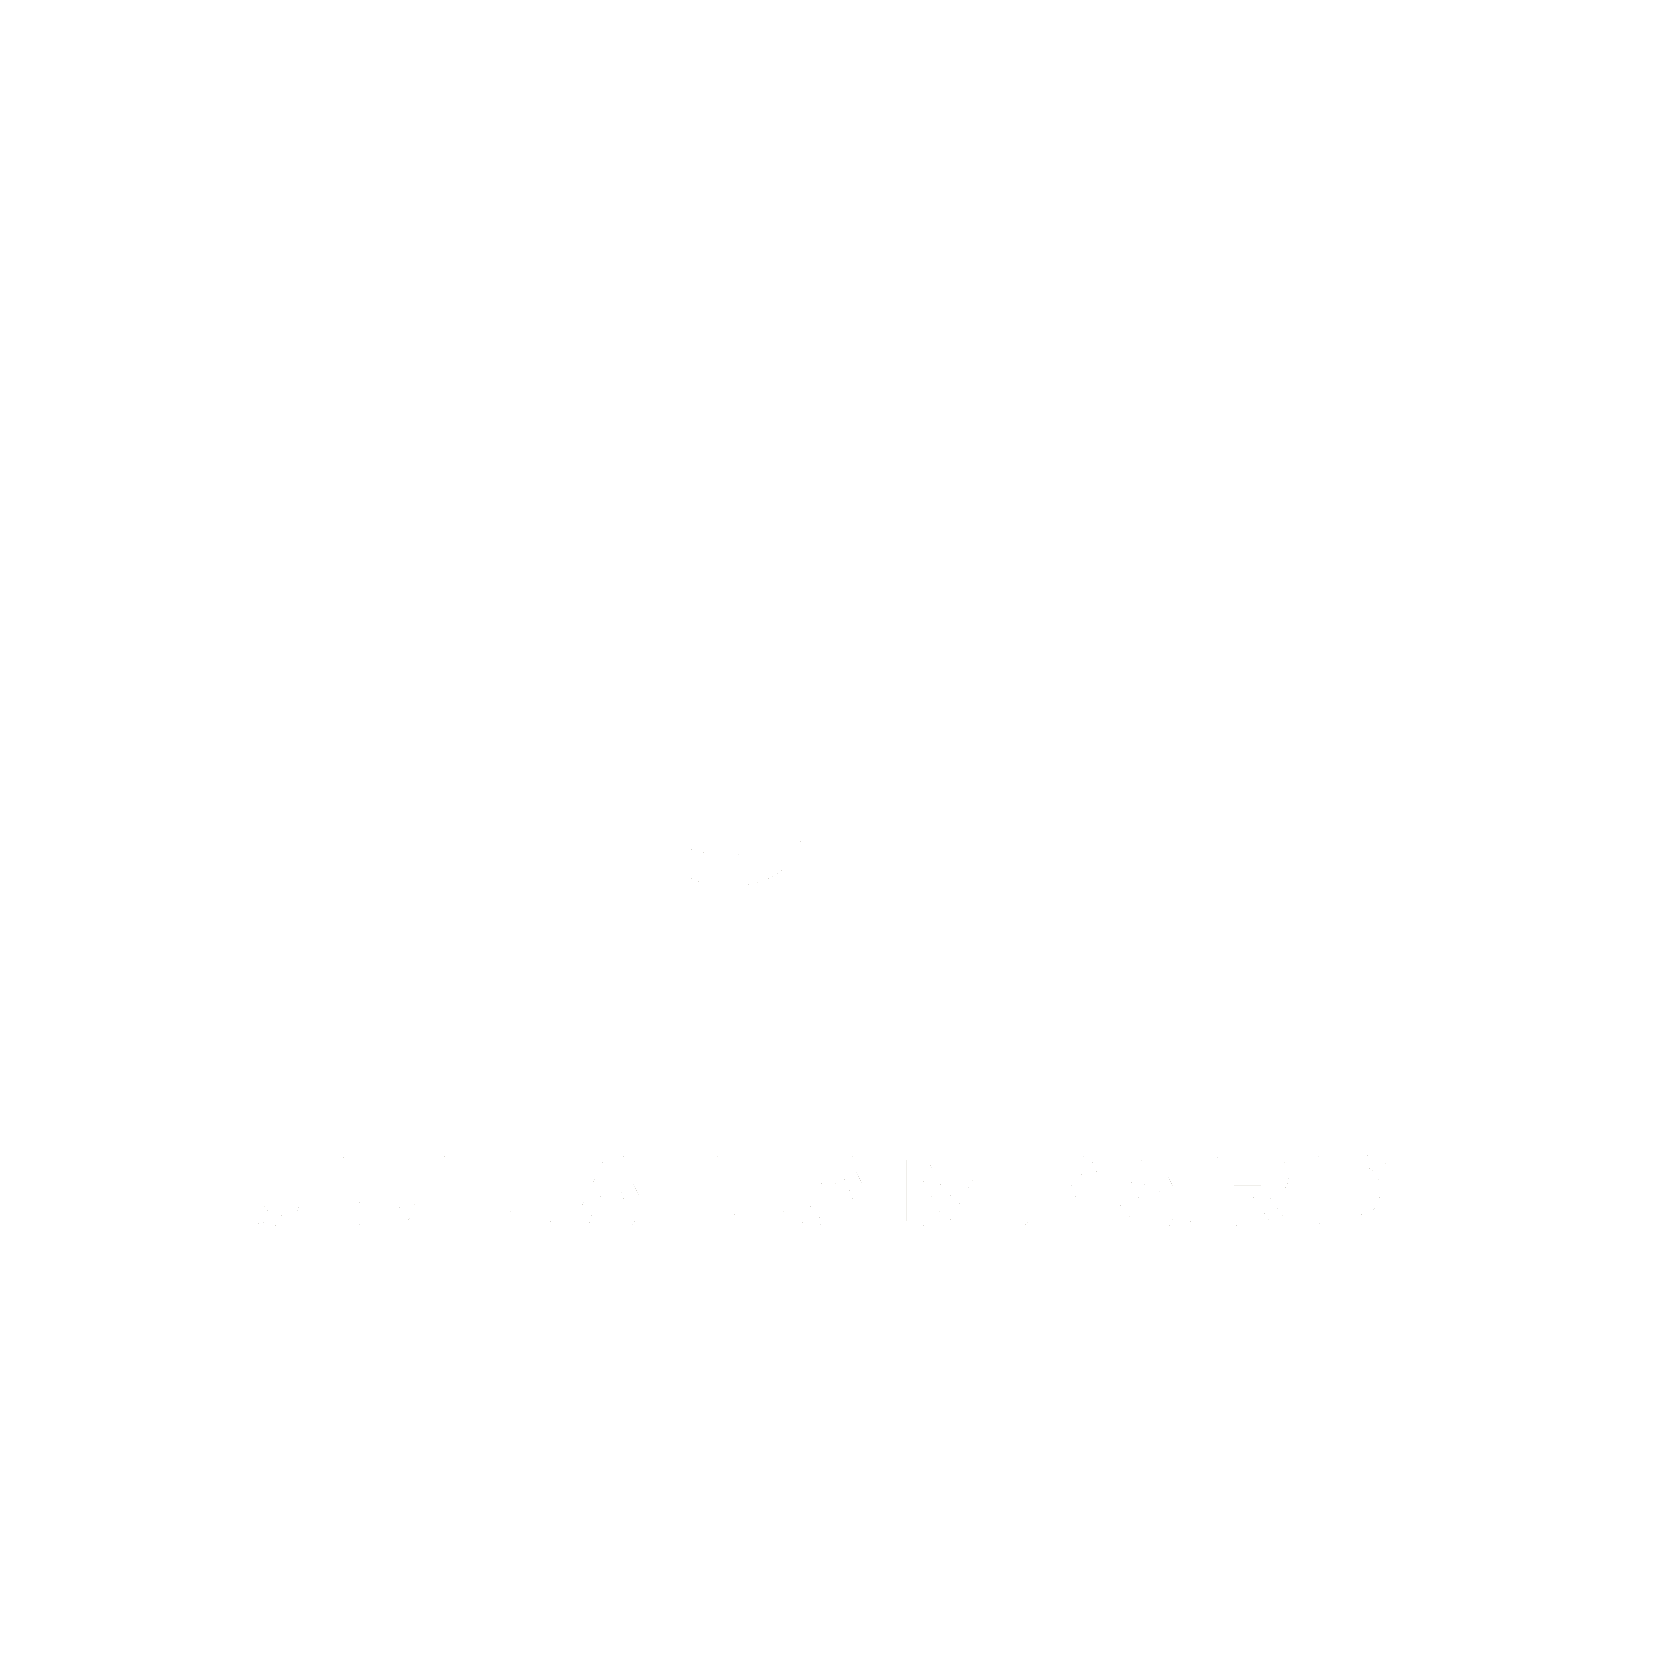 Julia Lampard logo white